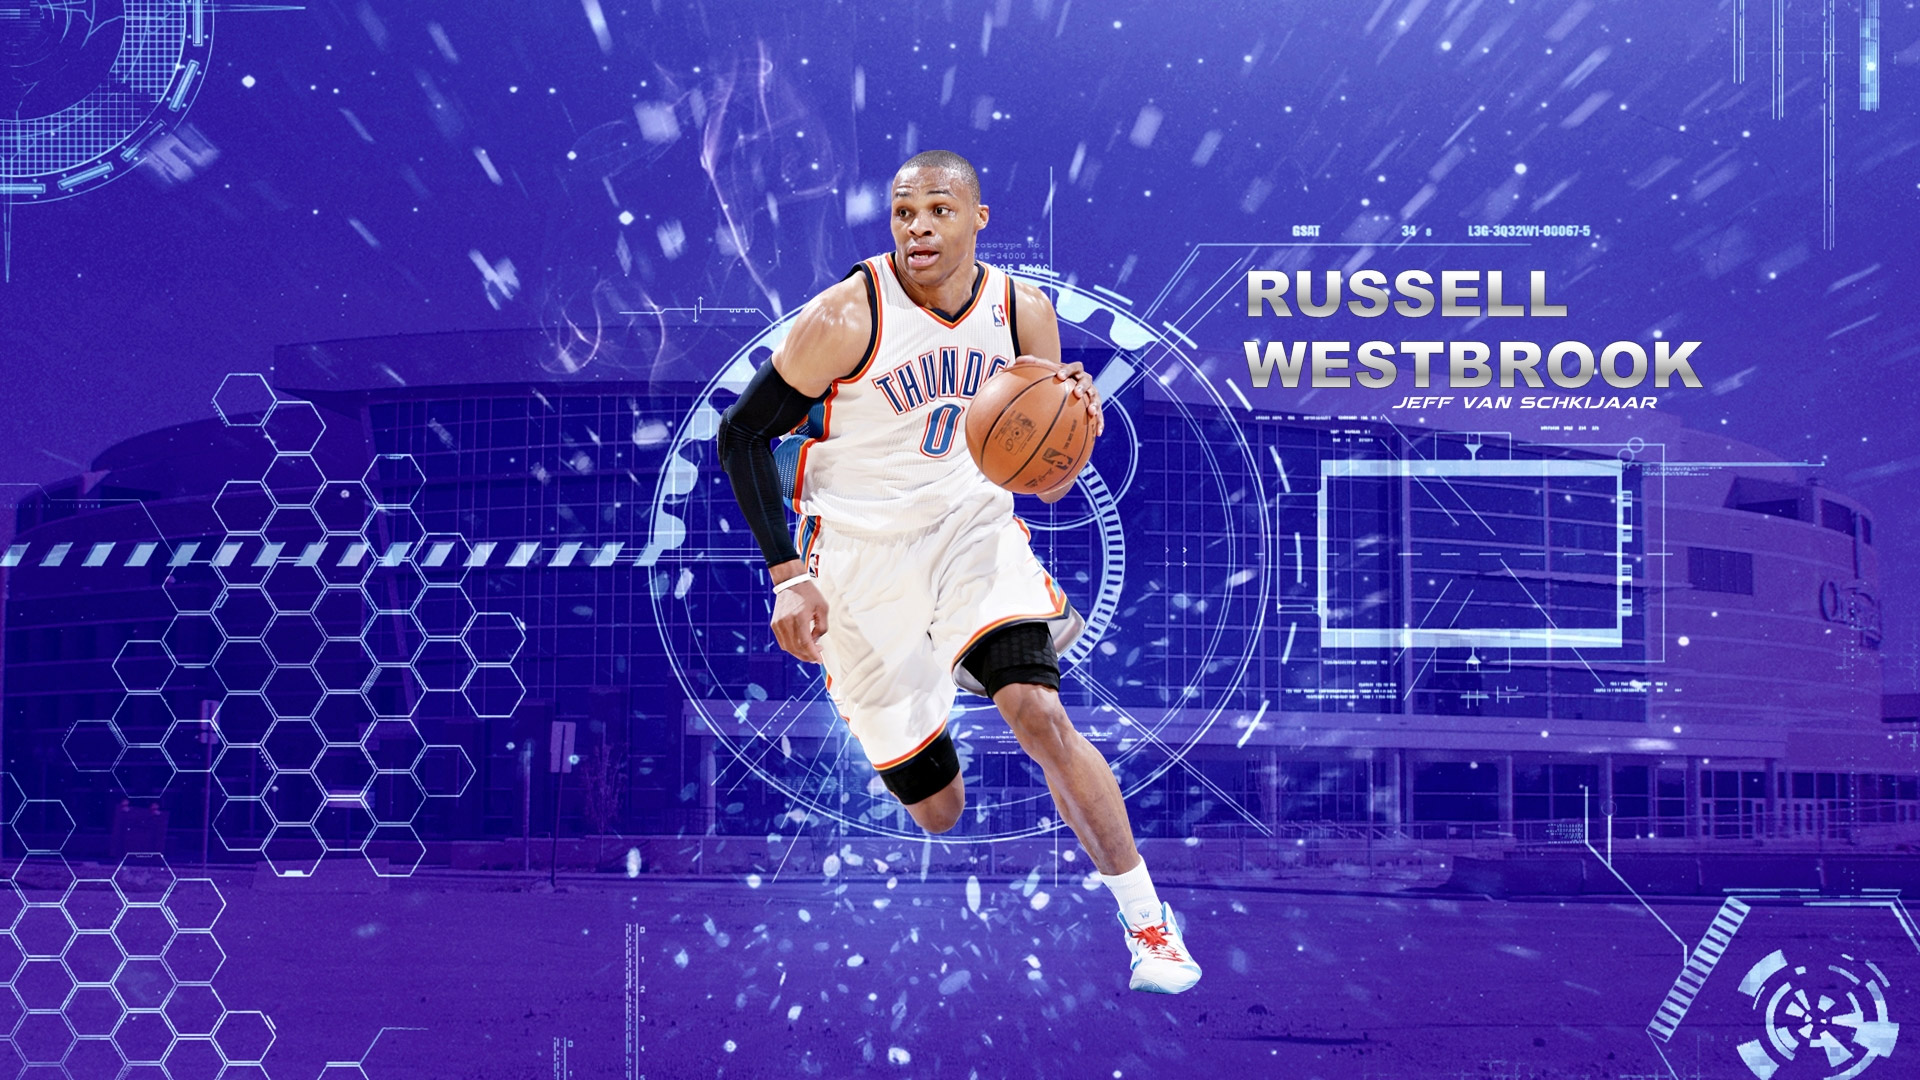 Russell Westbrook Wallpapers 2015